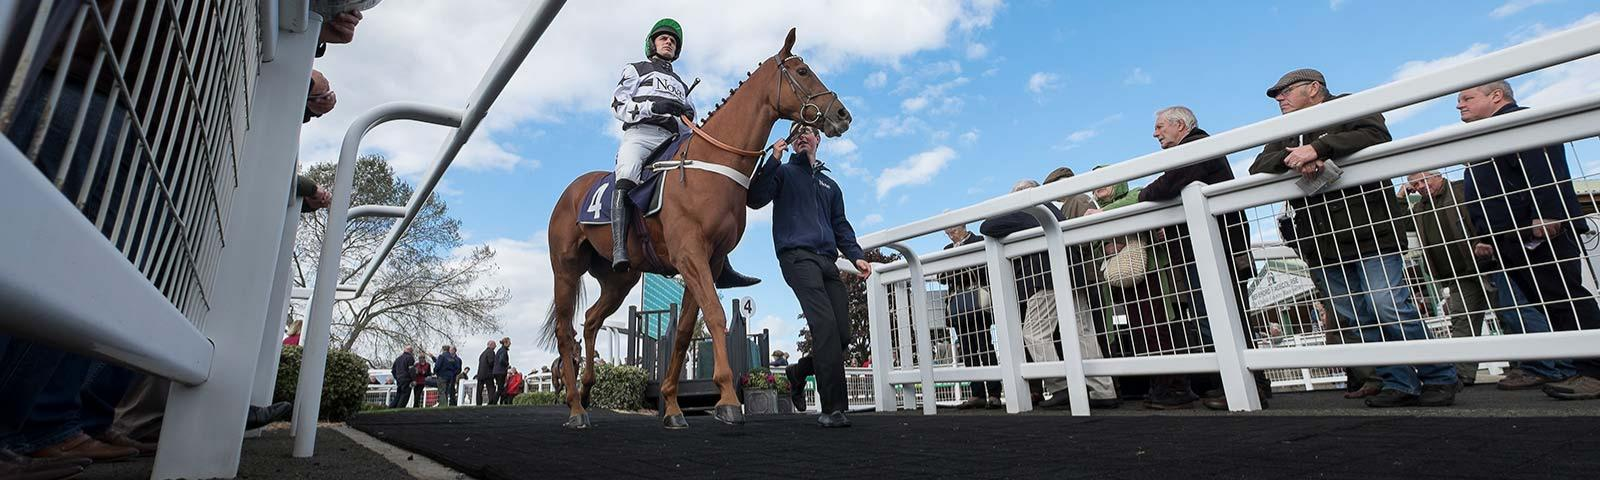 Jockey on a horse being led from parade ring onto the race track.